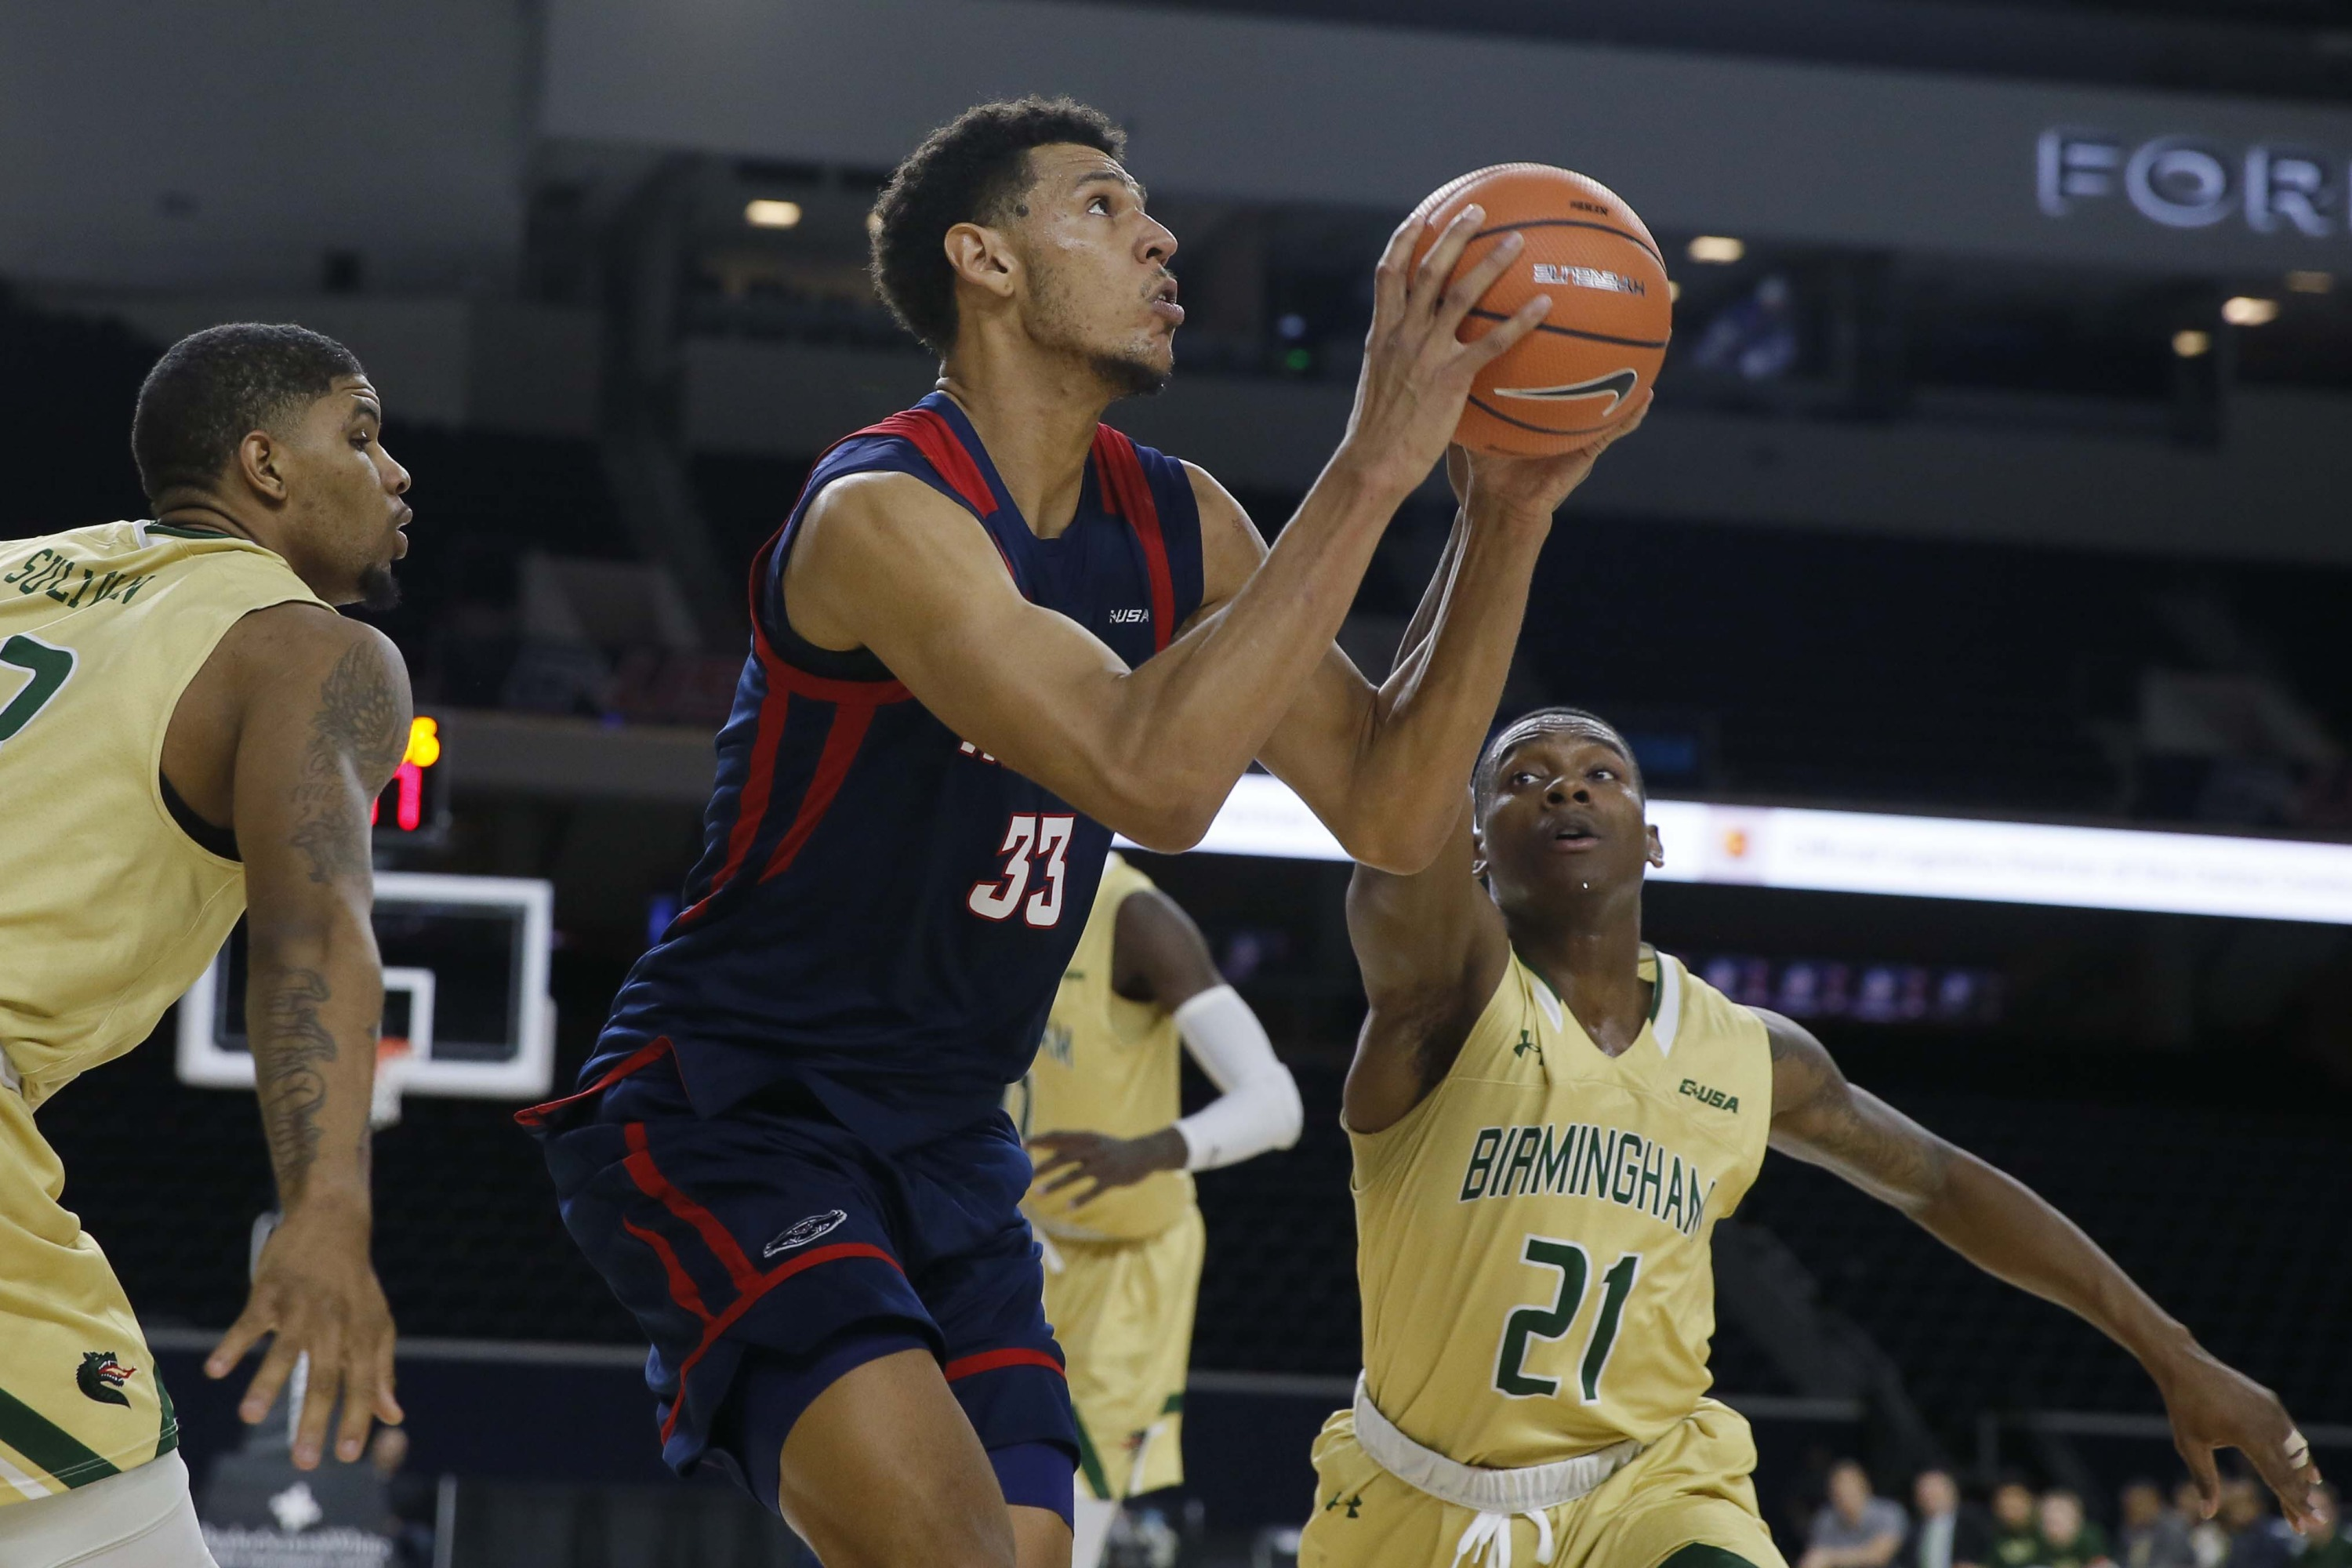 men's basketball's falls to uab 83-72 at c-usa tournament - florida